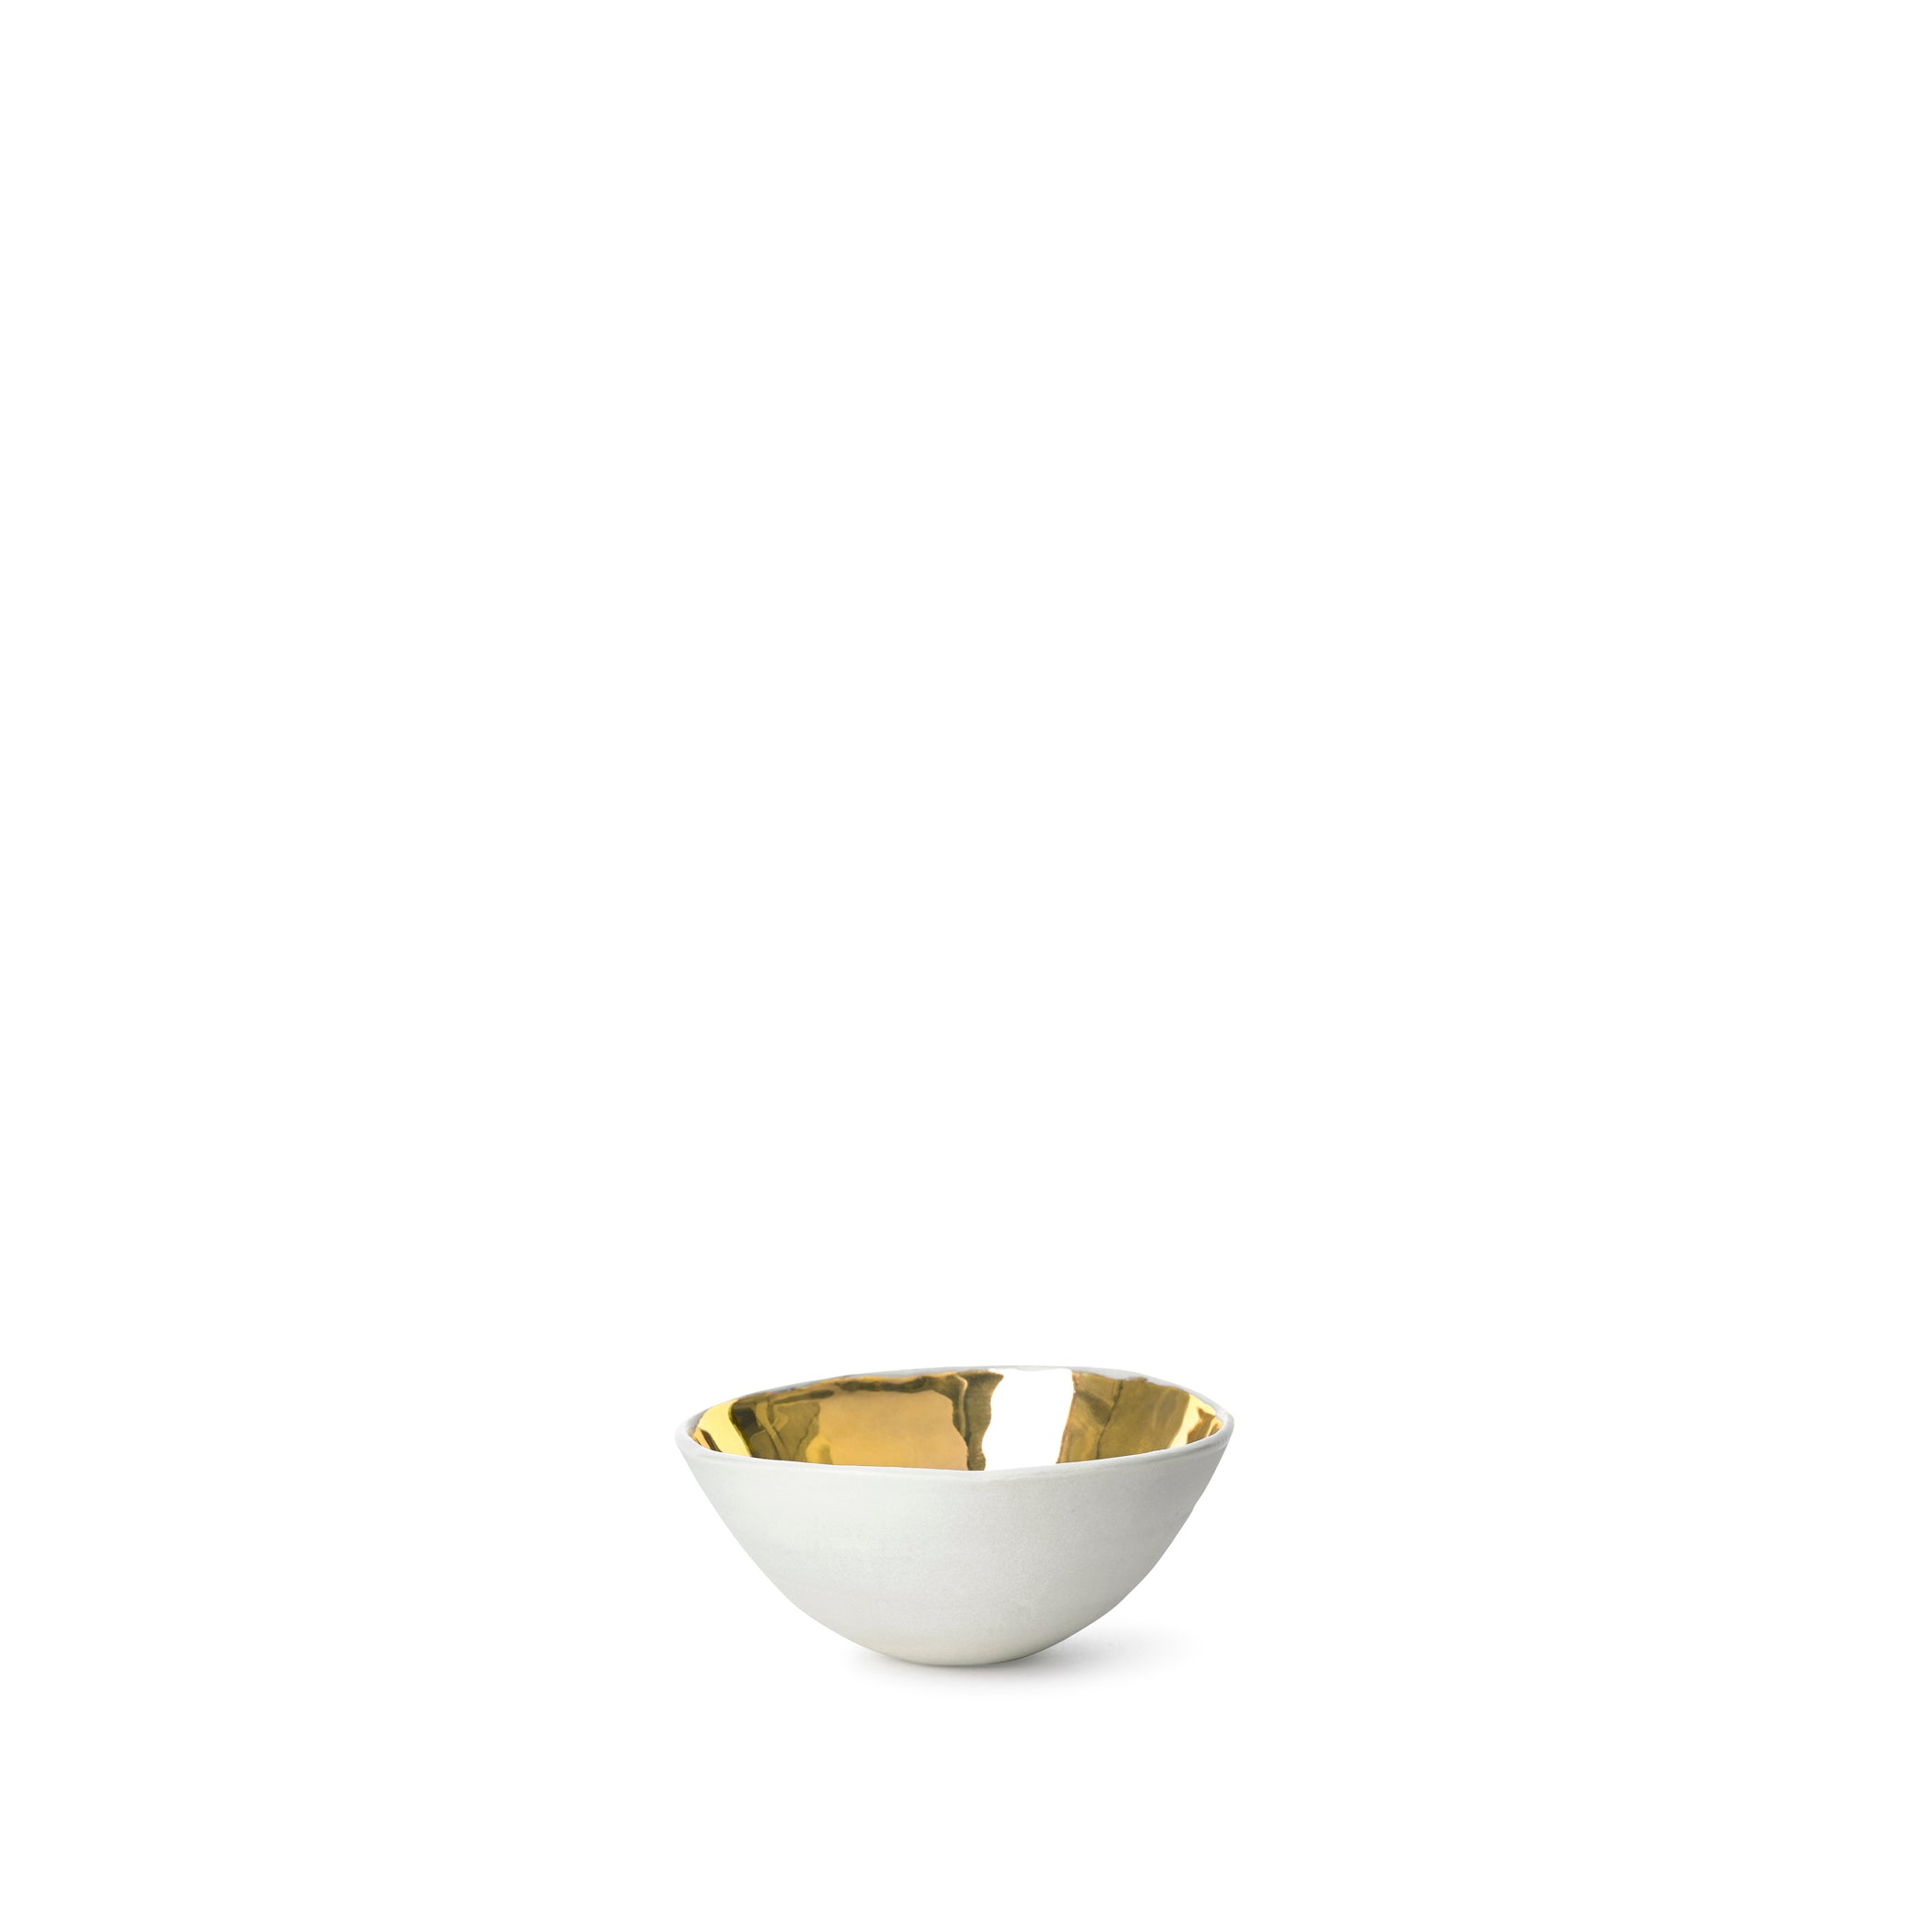 Full Painted White Ceramic Bowl with Gold Glaze, 6cm